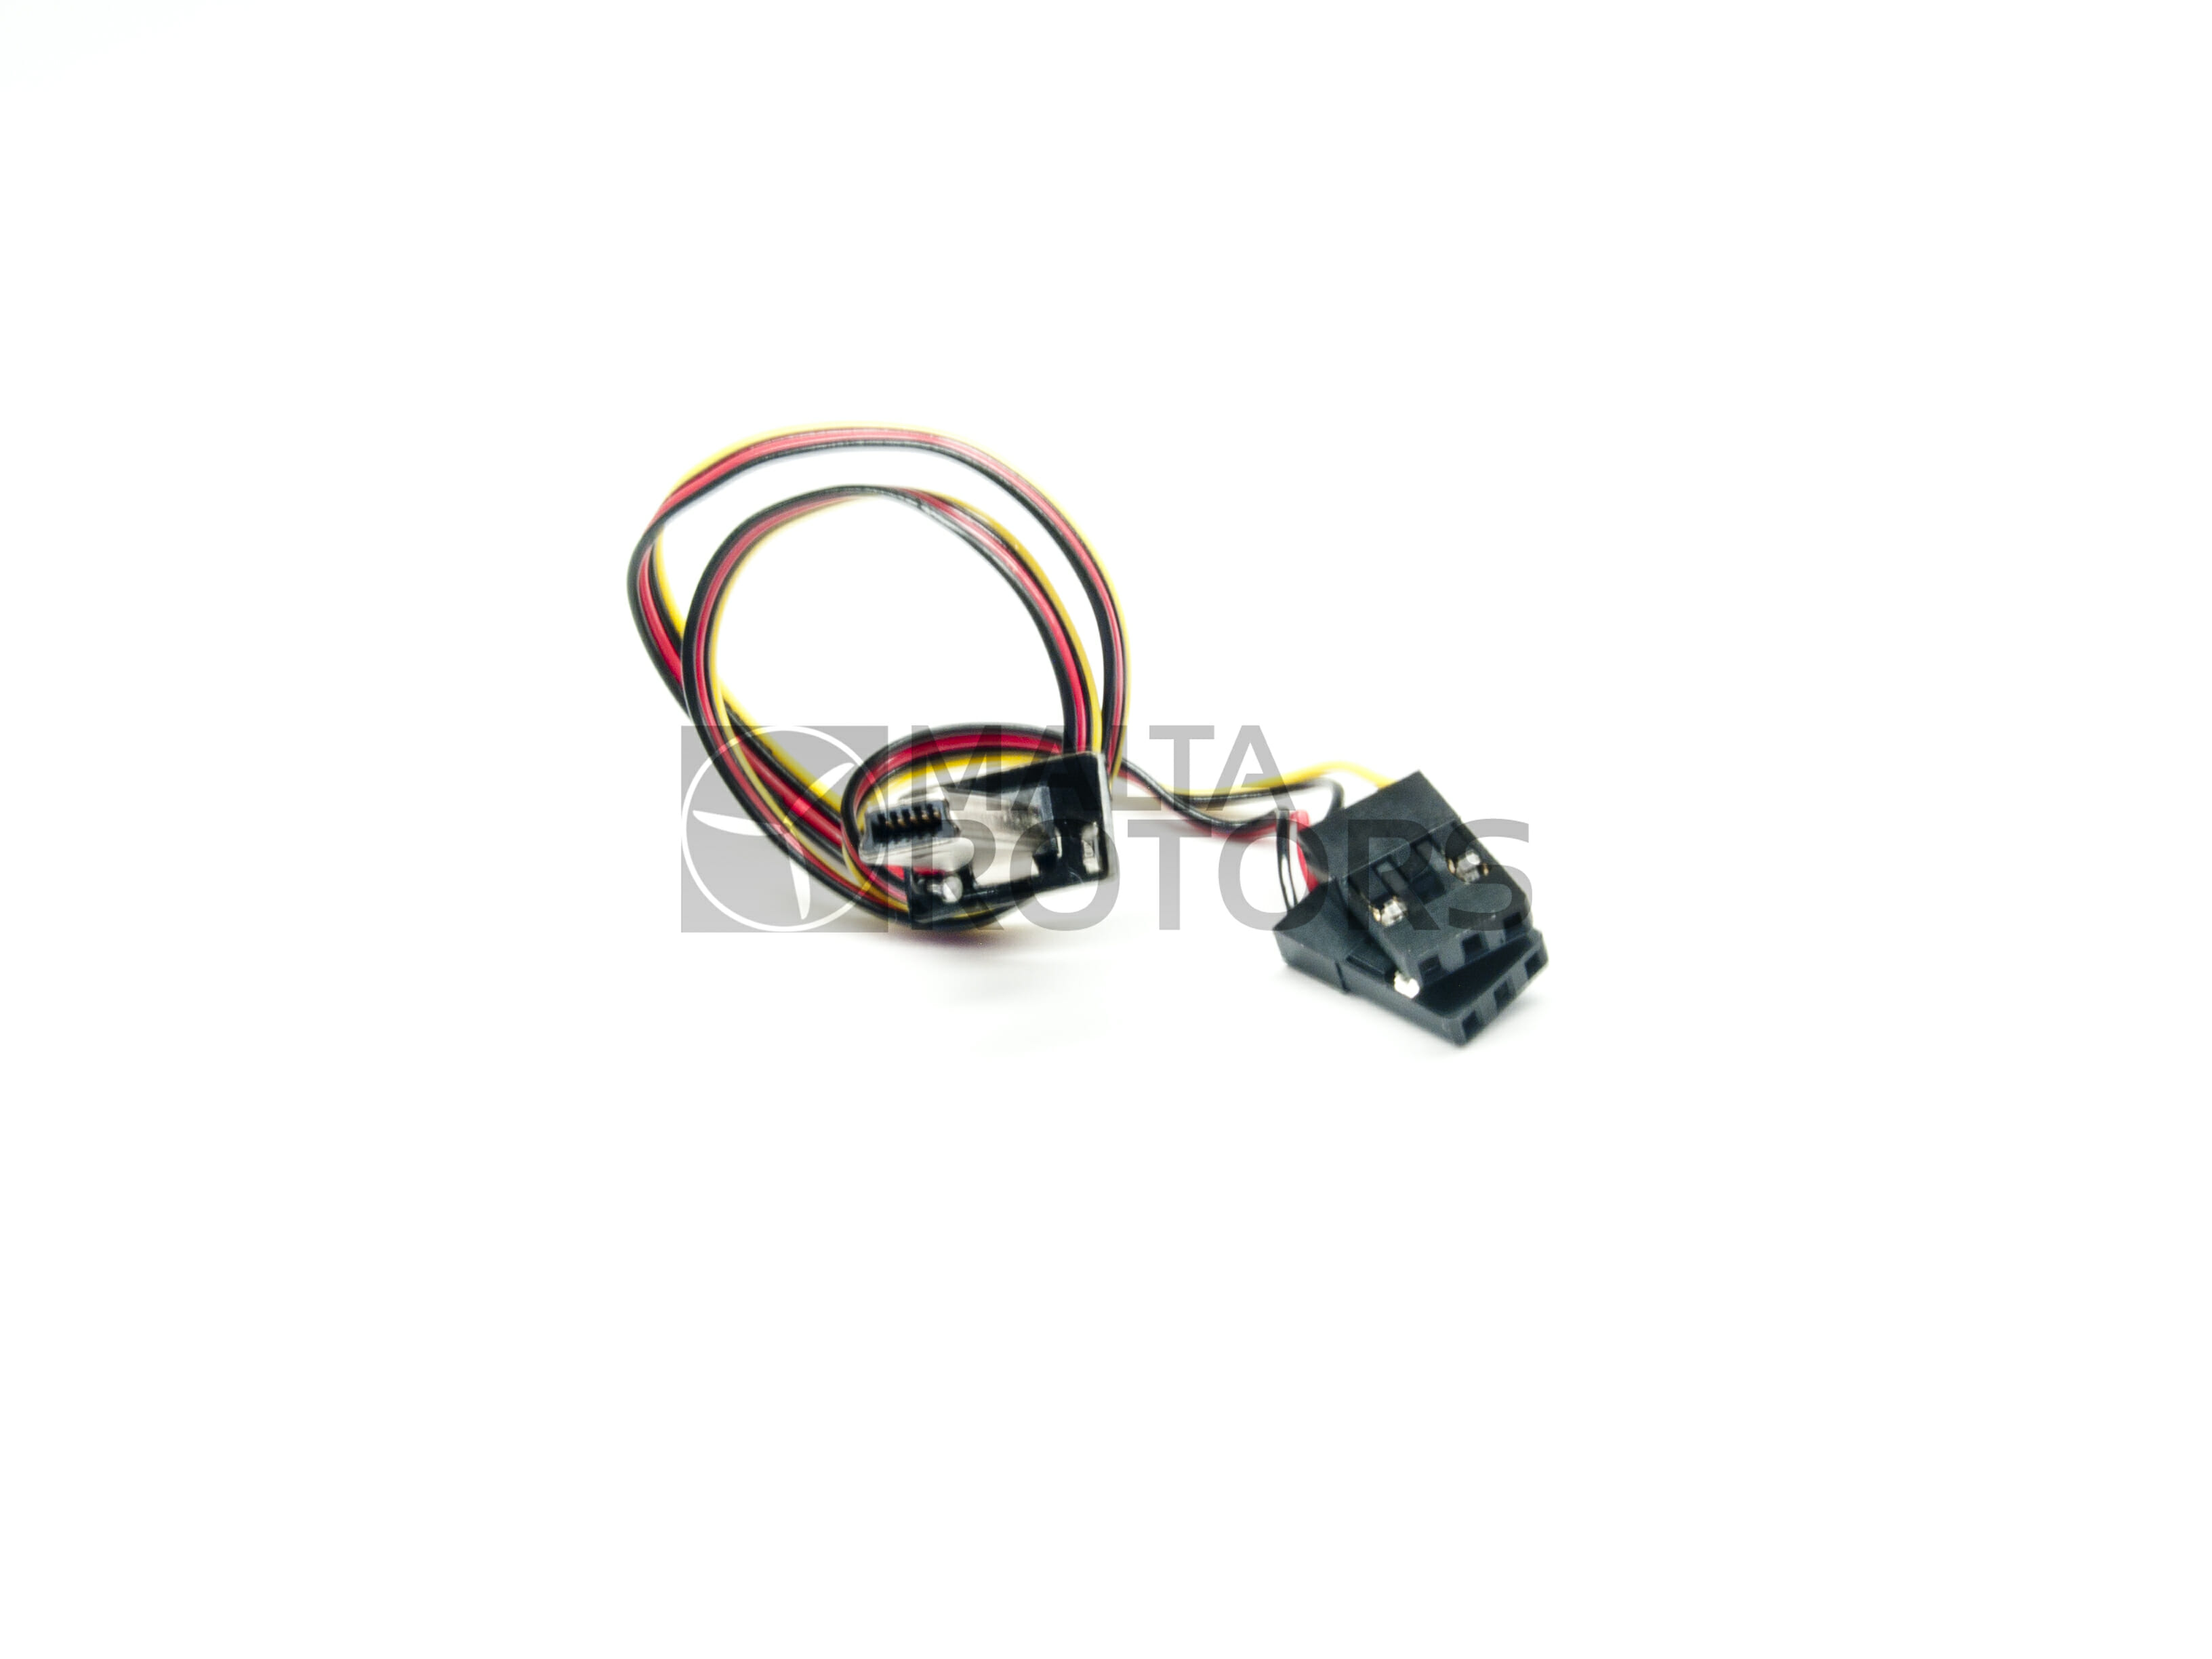 gopro3 audio video cable for fpv